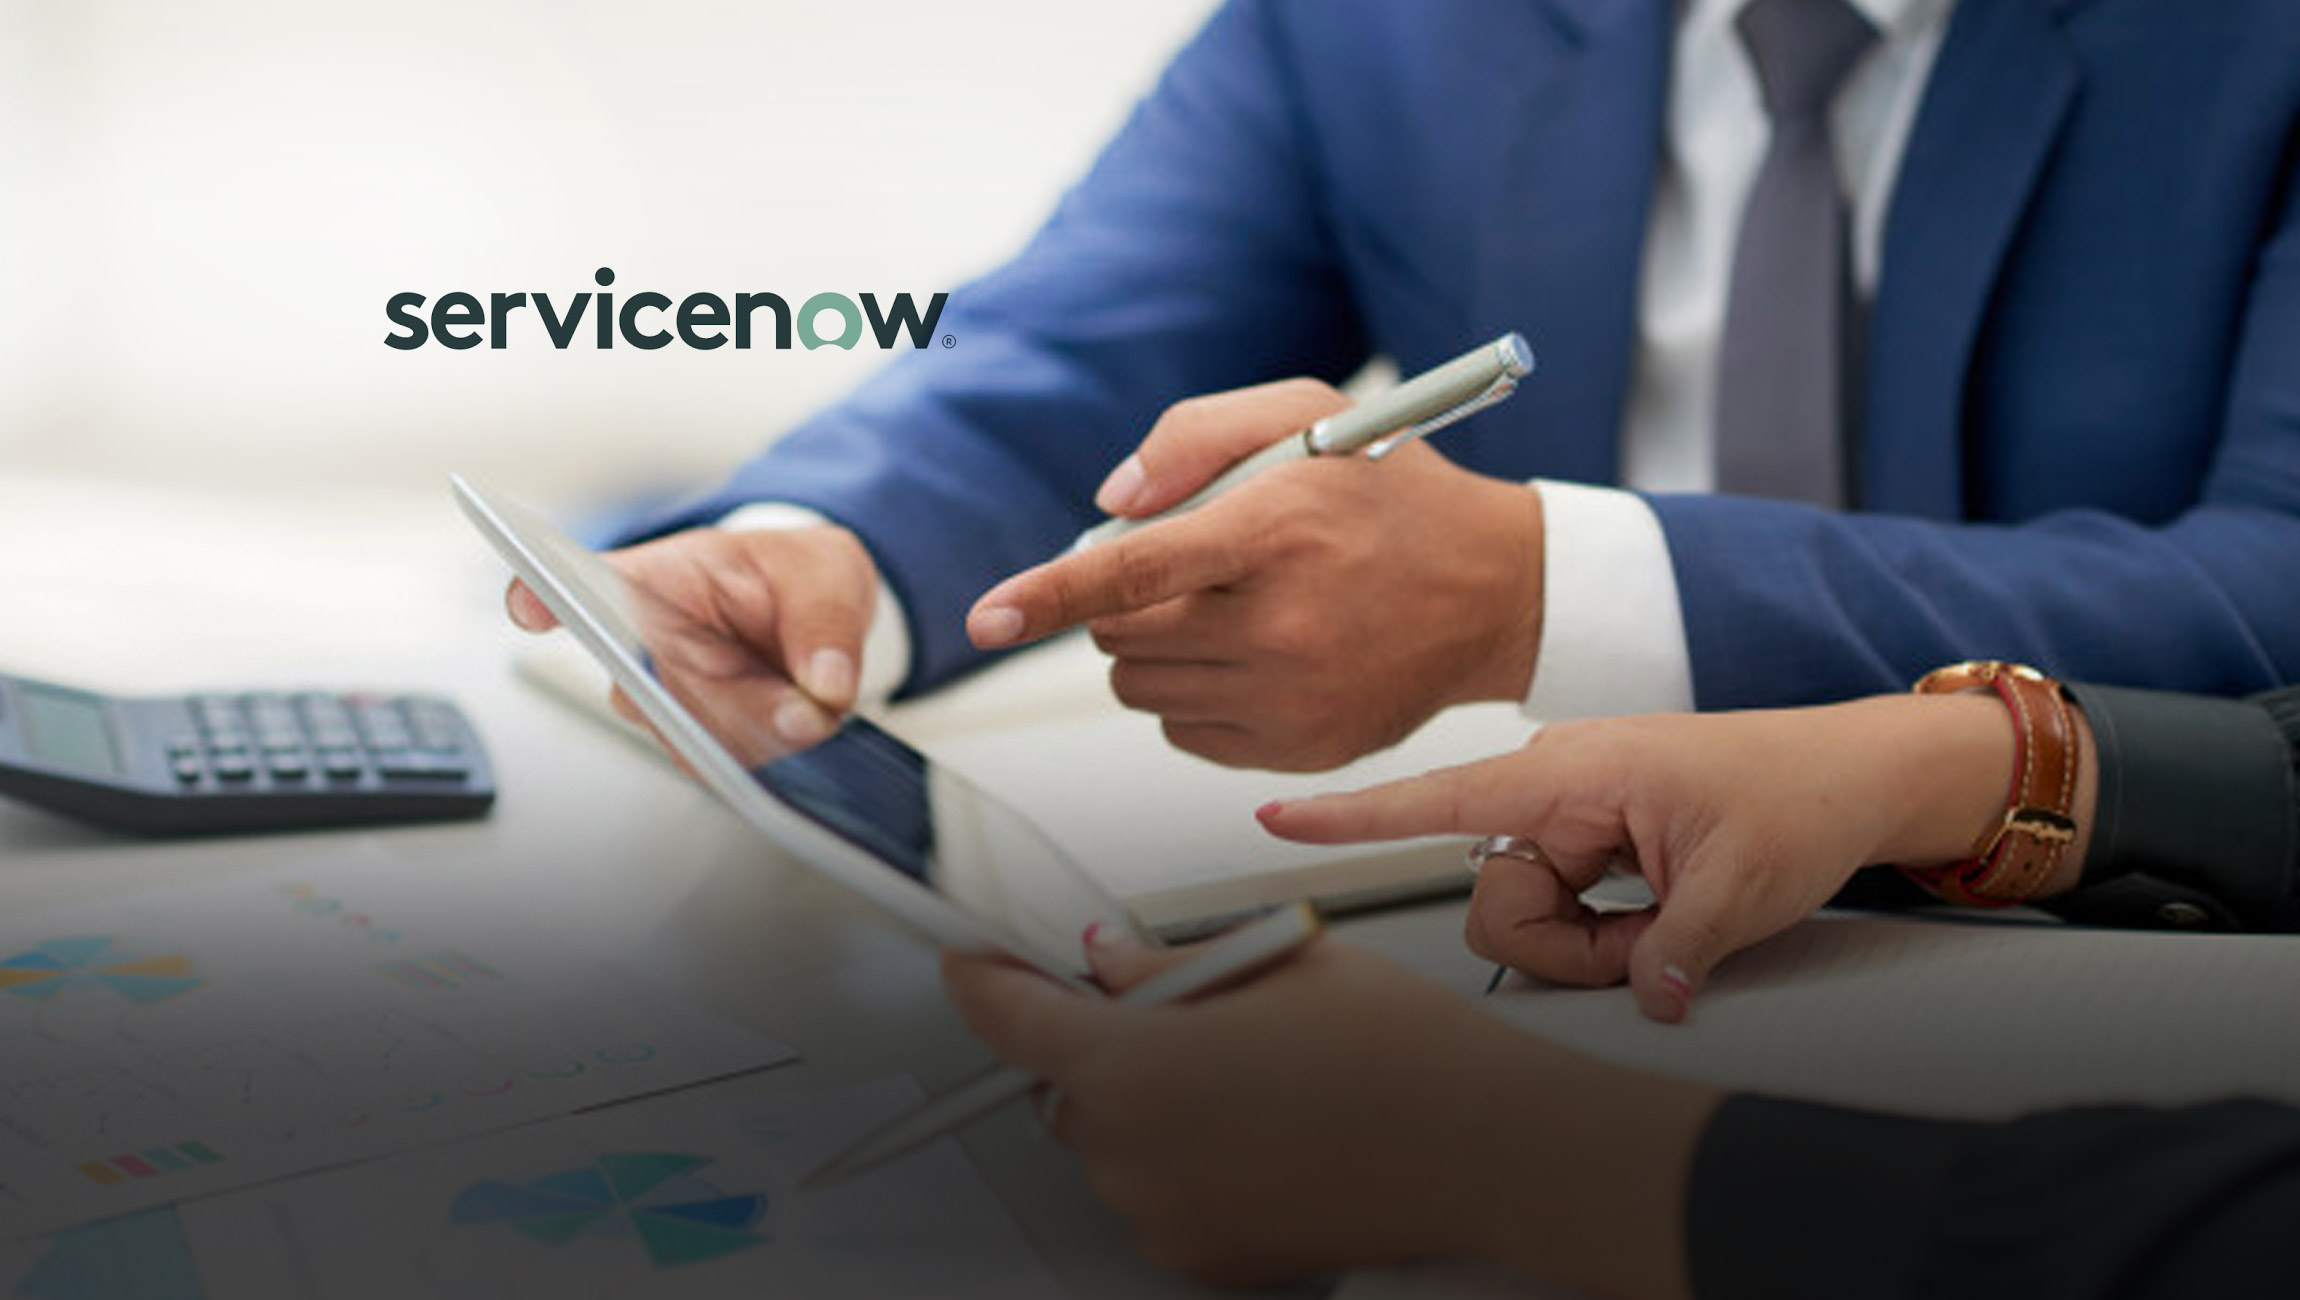 ServiceNow Revolutionizes Operations by Connecting IoT Data to Digital Workflows